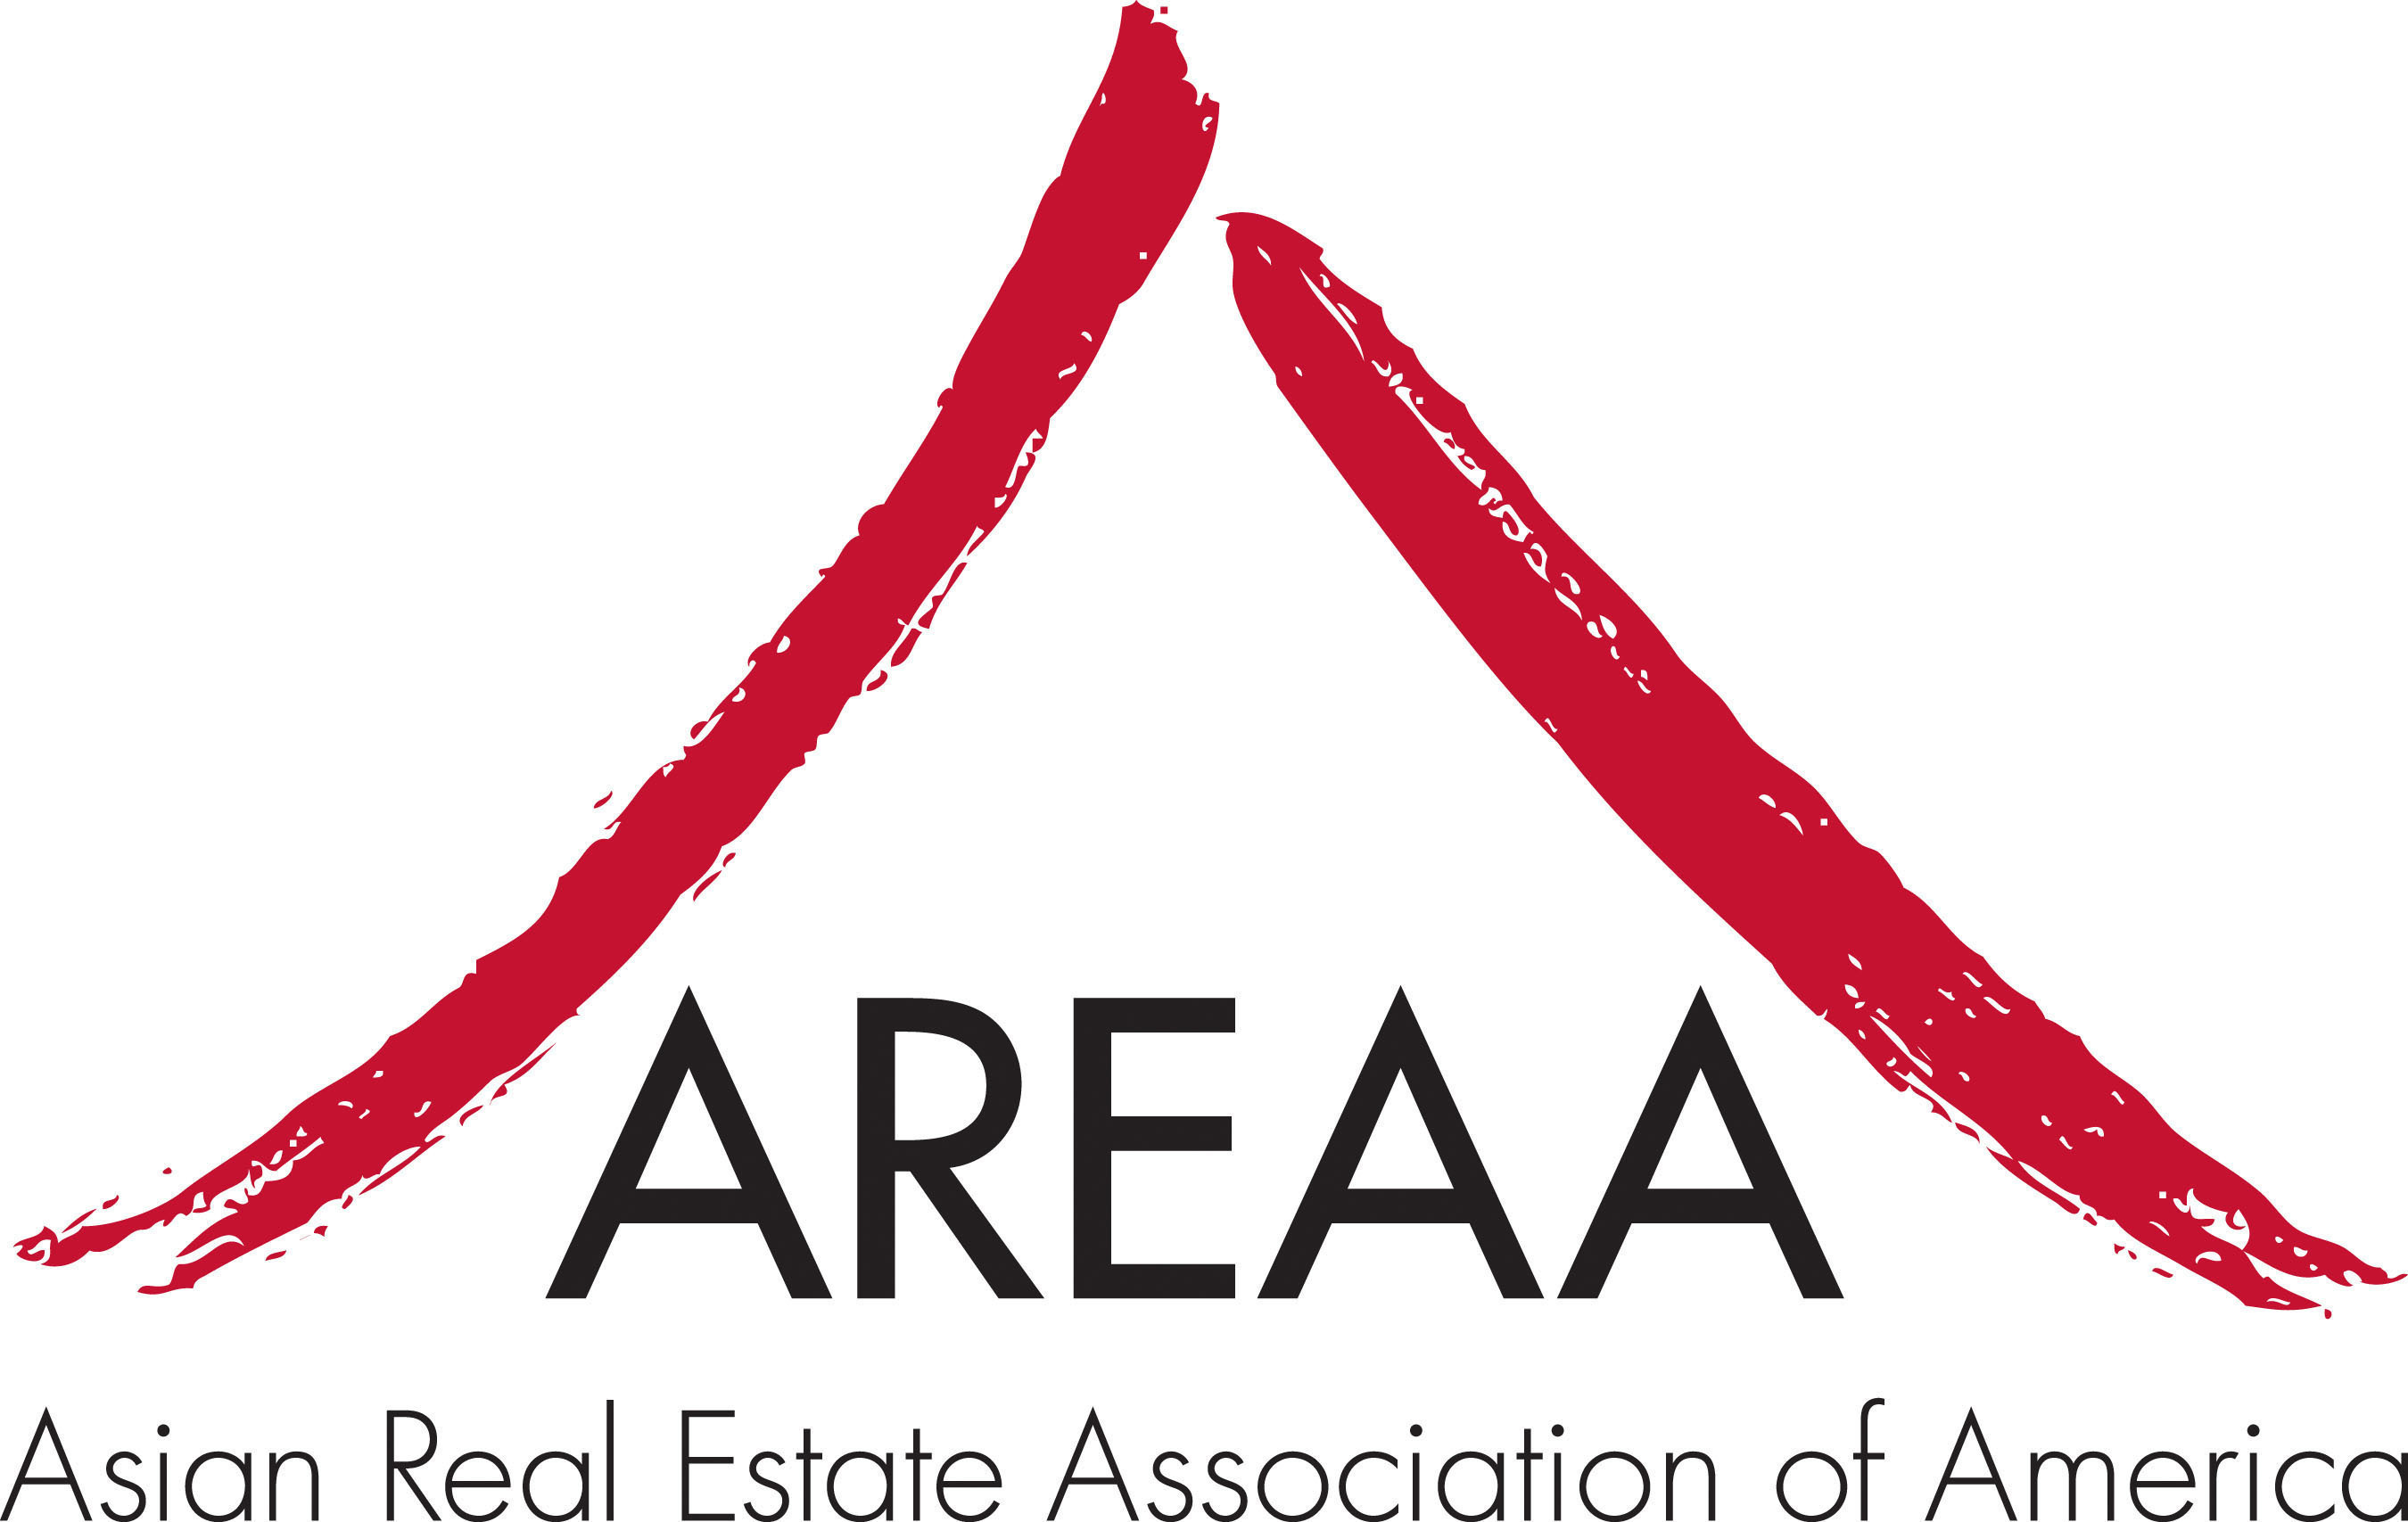 AREAA's Annual Convention Celebrates the Historical Contributions of Asian American Community and Outlines a Path for Expanded Homeownership for All